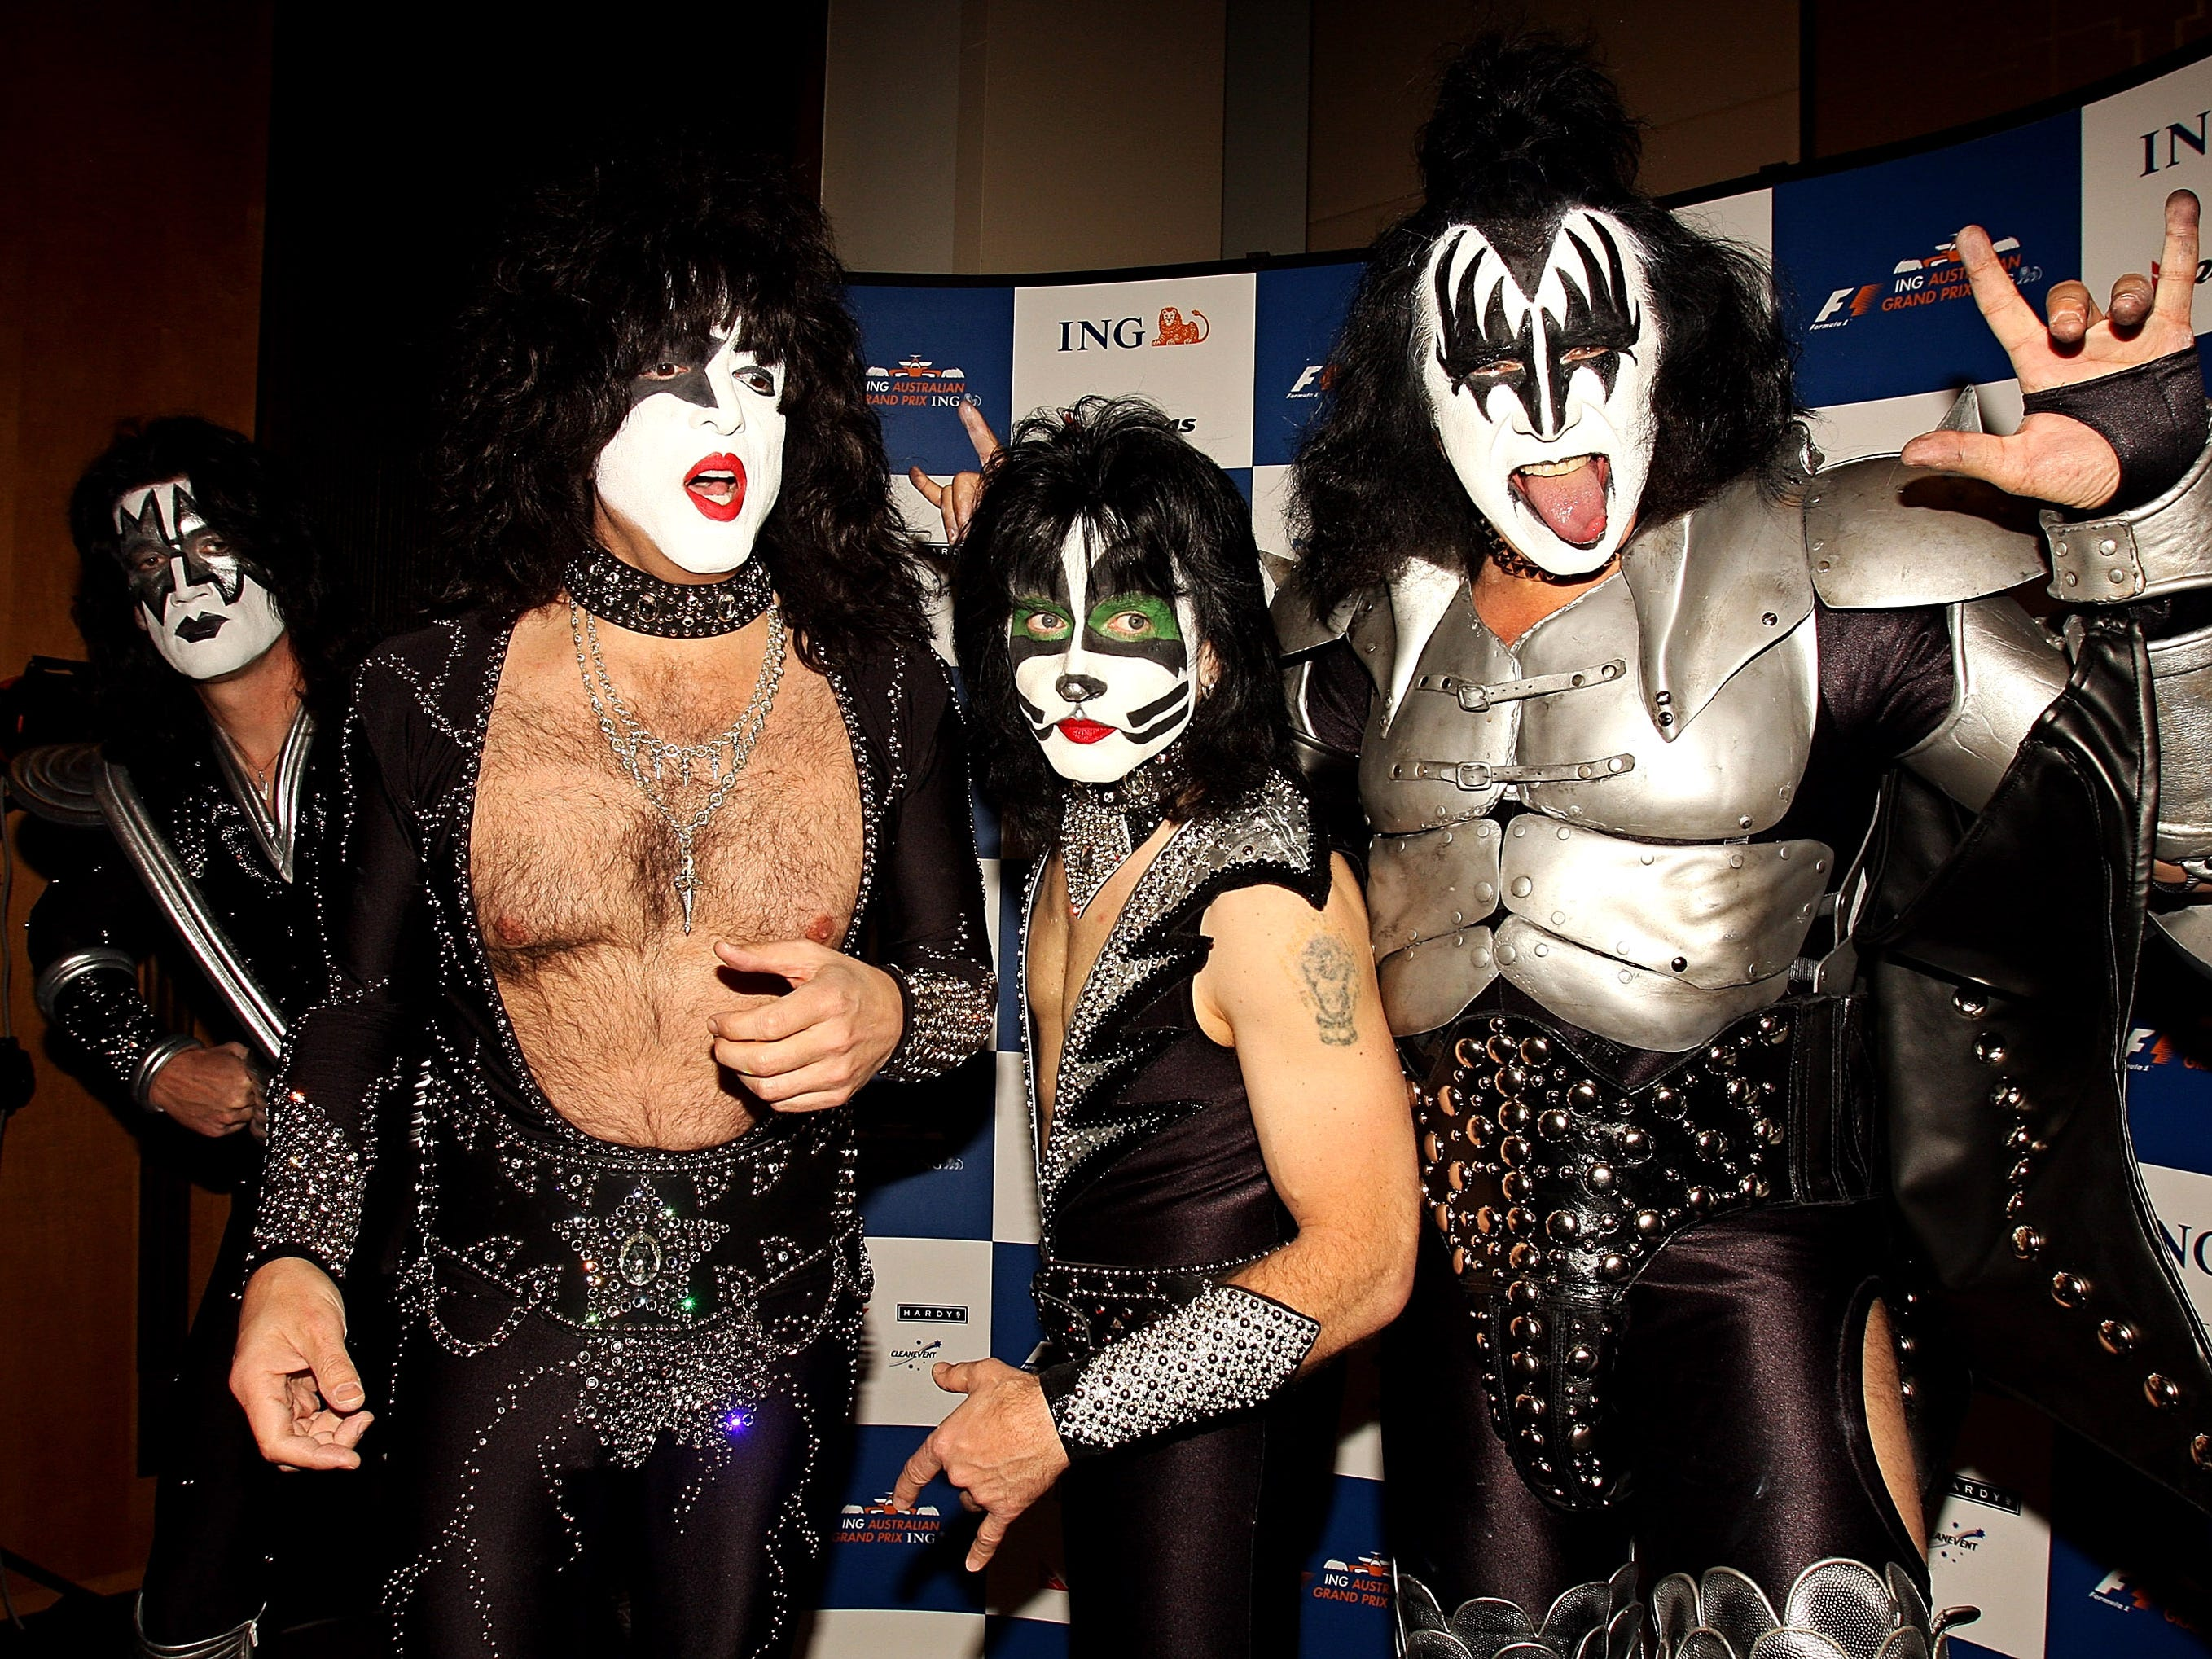 MELBOURNE, AUSTRALIA - MARCH 12:  (L-R) Tommy Thayer, Paul Stanly, Eric Singer and Gene Simmons of the band 'Kiss' pose for the media during a press conference at the Crown Towers on March 12, 2008 in Melbourne, Australia.  (Photo by Luis Enrique Ascui/Getty Images)